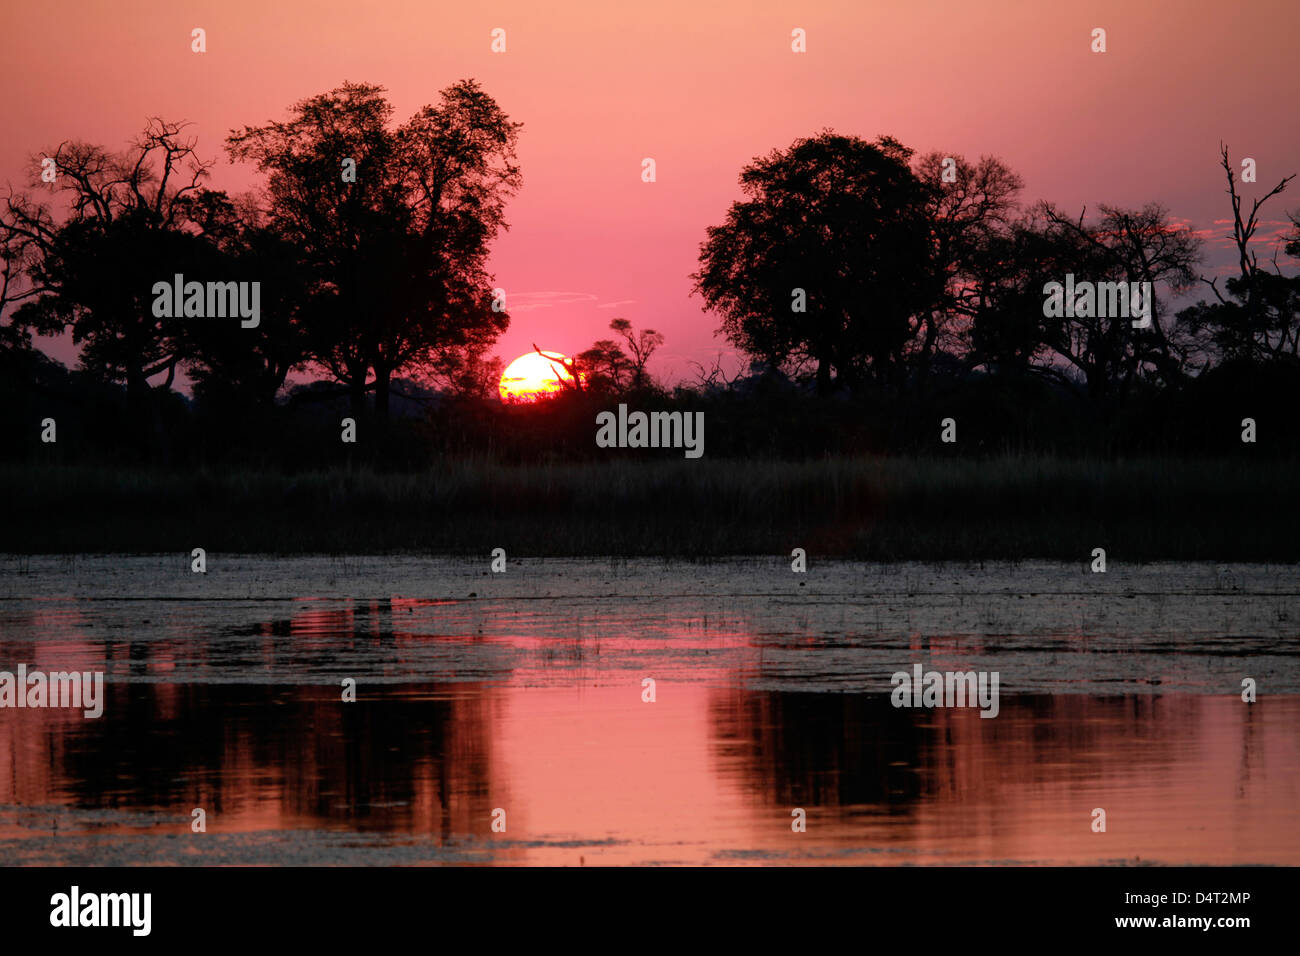 Botswana, Okavango Delta. Sunset view from the Fish Eagle Bar at Eagle Island Camp, an Orient Express safari property. - Stock Image